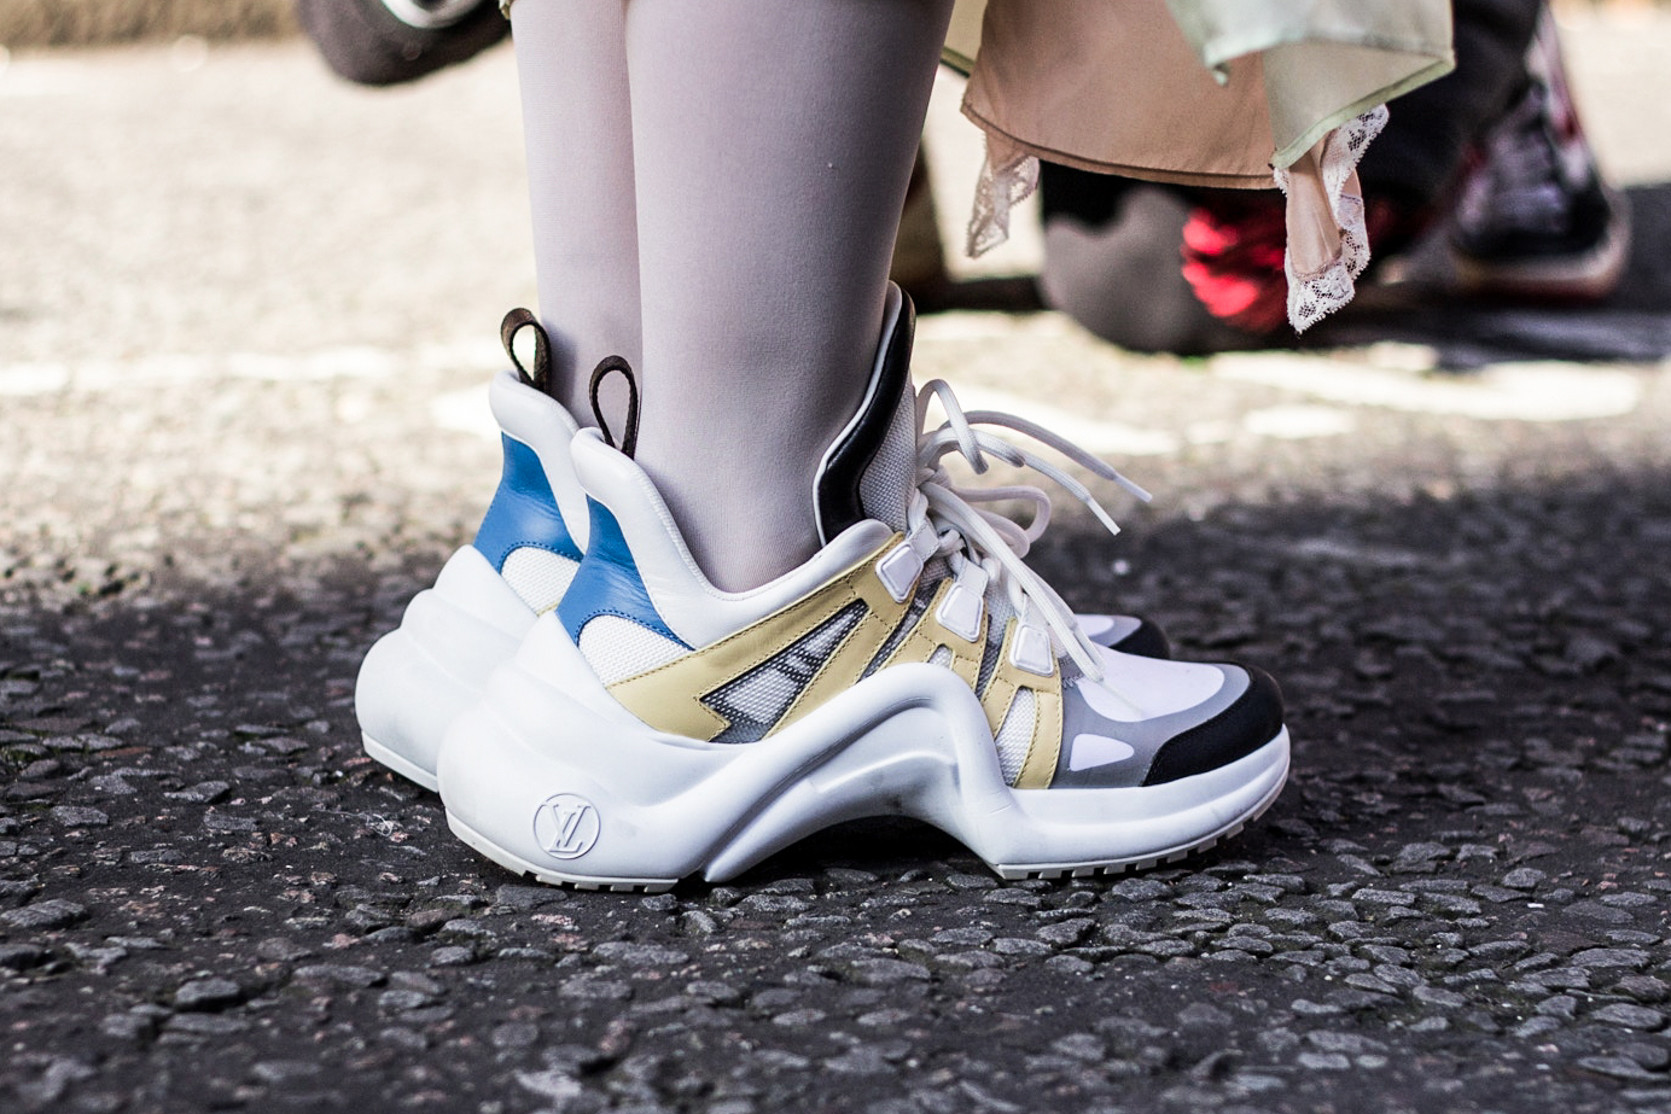 Sneakers to Replace the Triple S